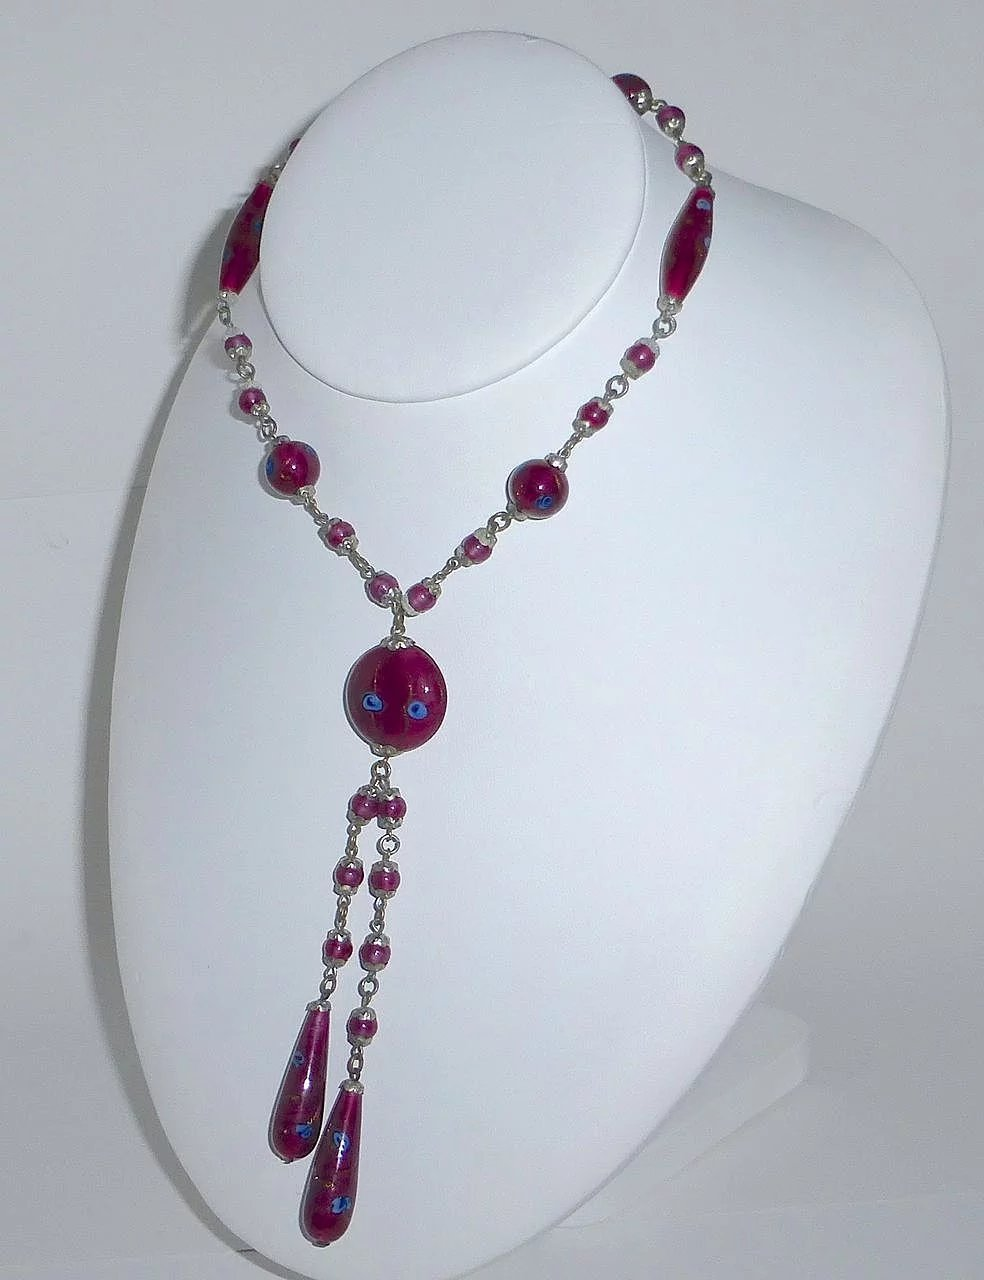 Rare Cranberry Venetian Glass Bead Necklace Bejewelled